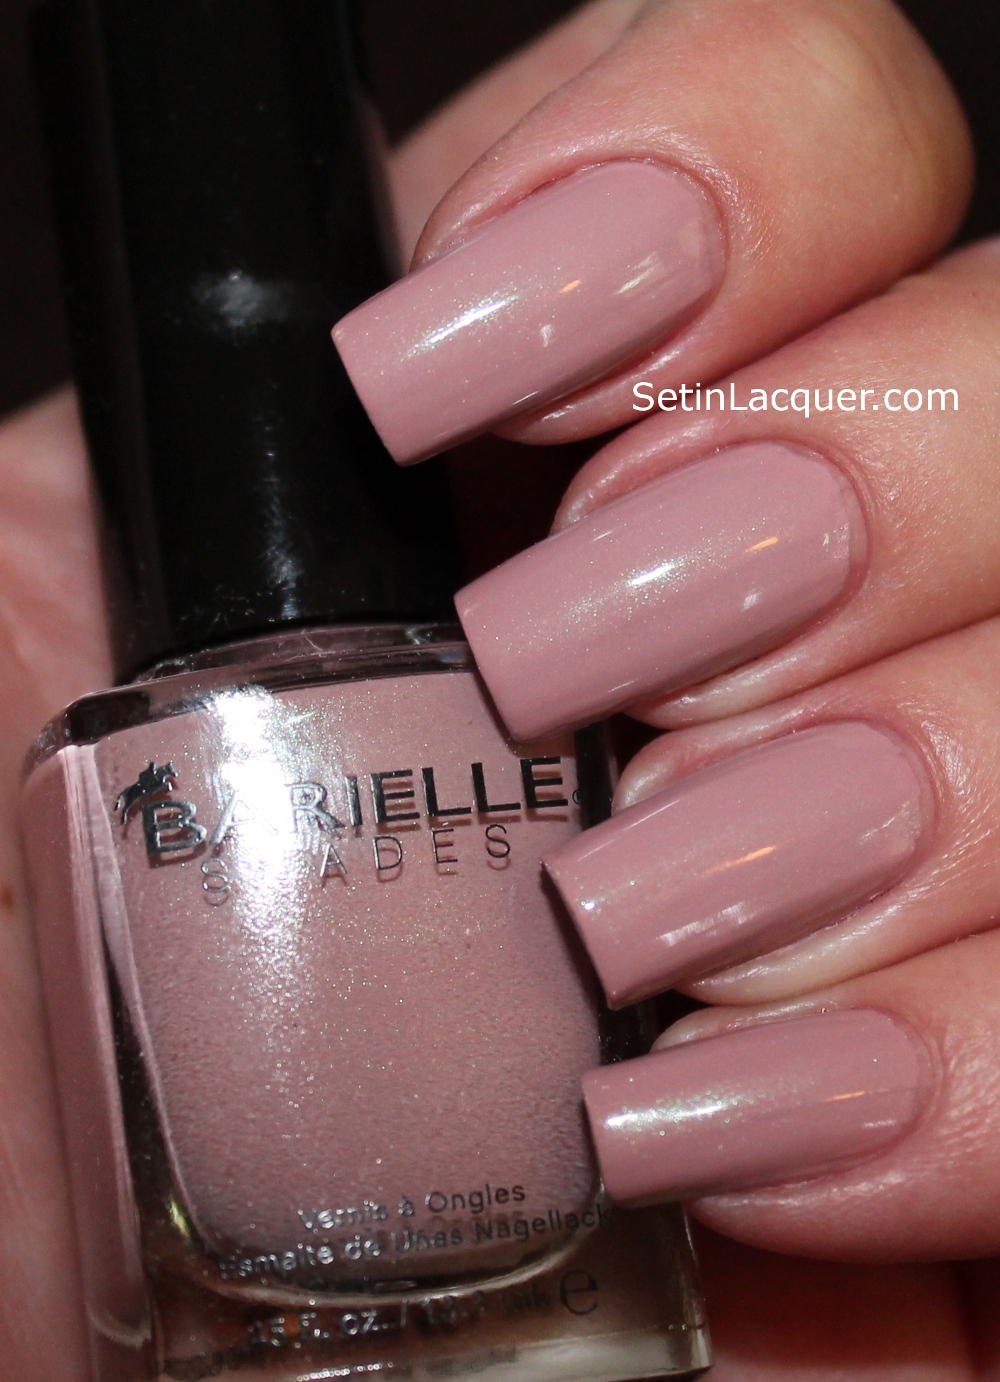 Barielle New York Style Fall collection swatches - Set in Lacquer